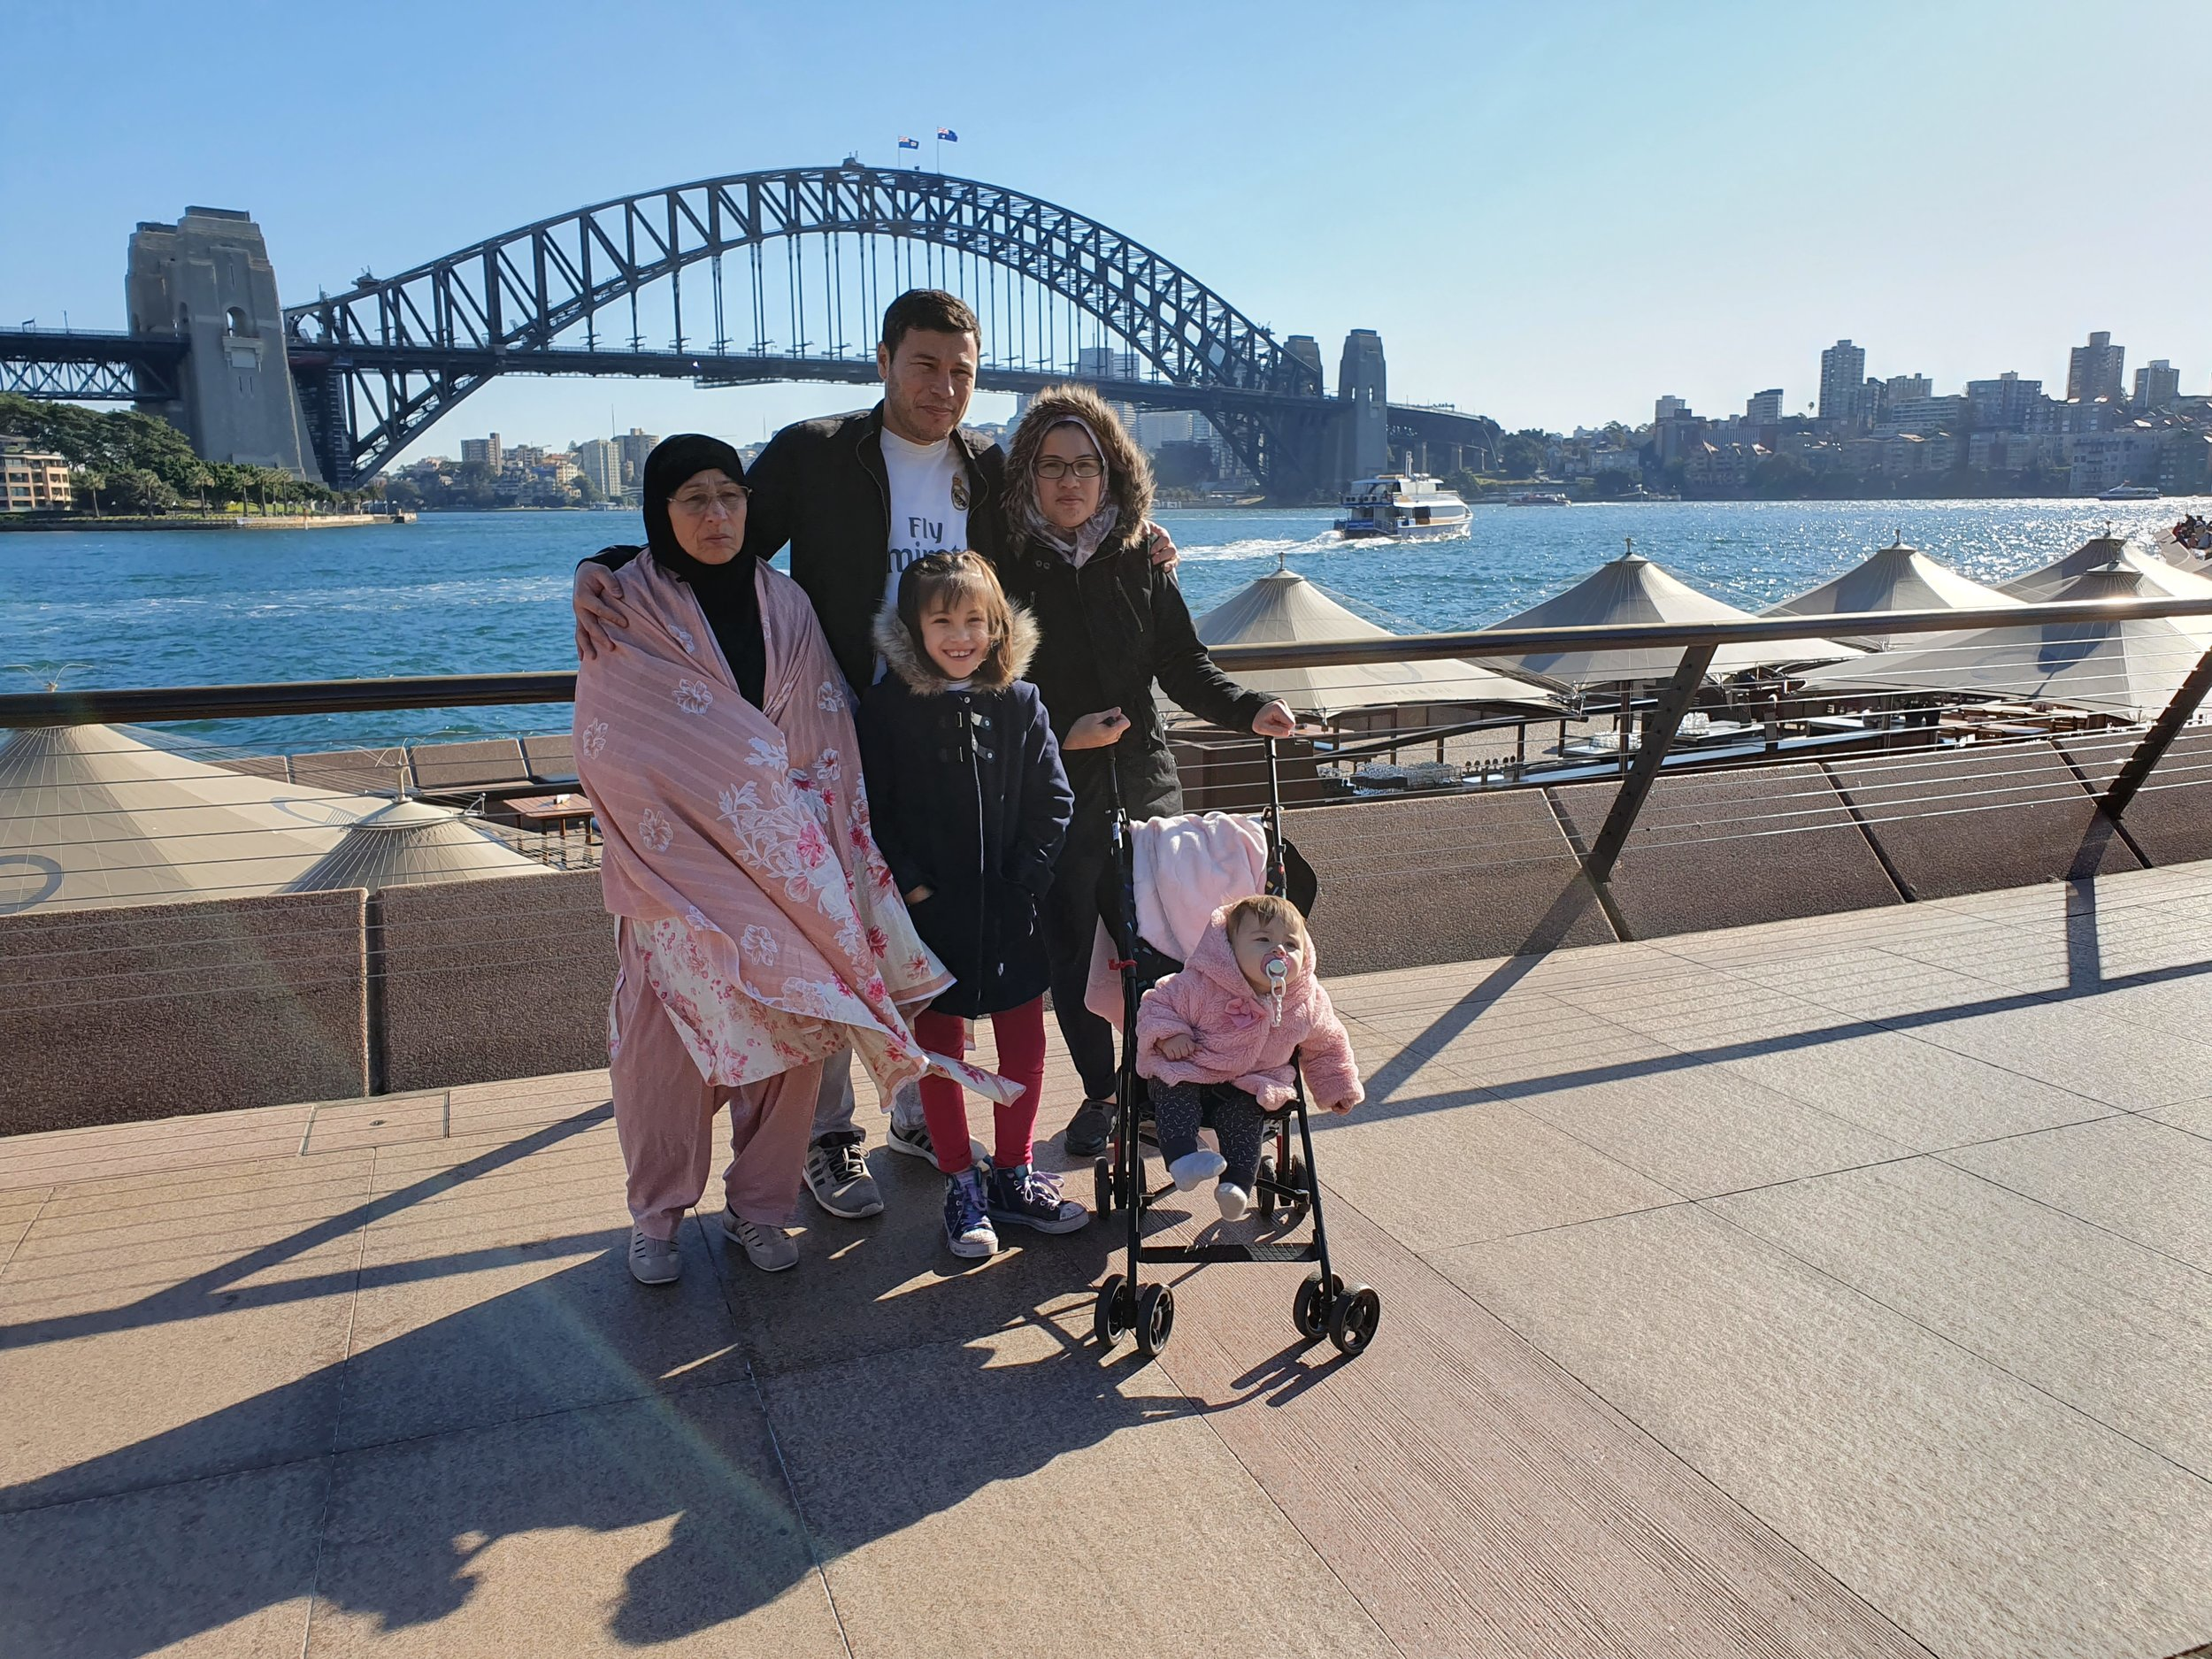 A classic tourist shot at the Sydney Harbor Bridge.jpg